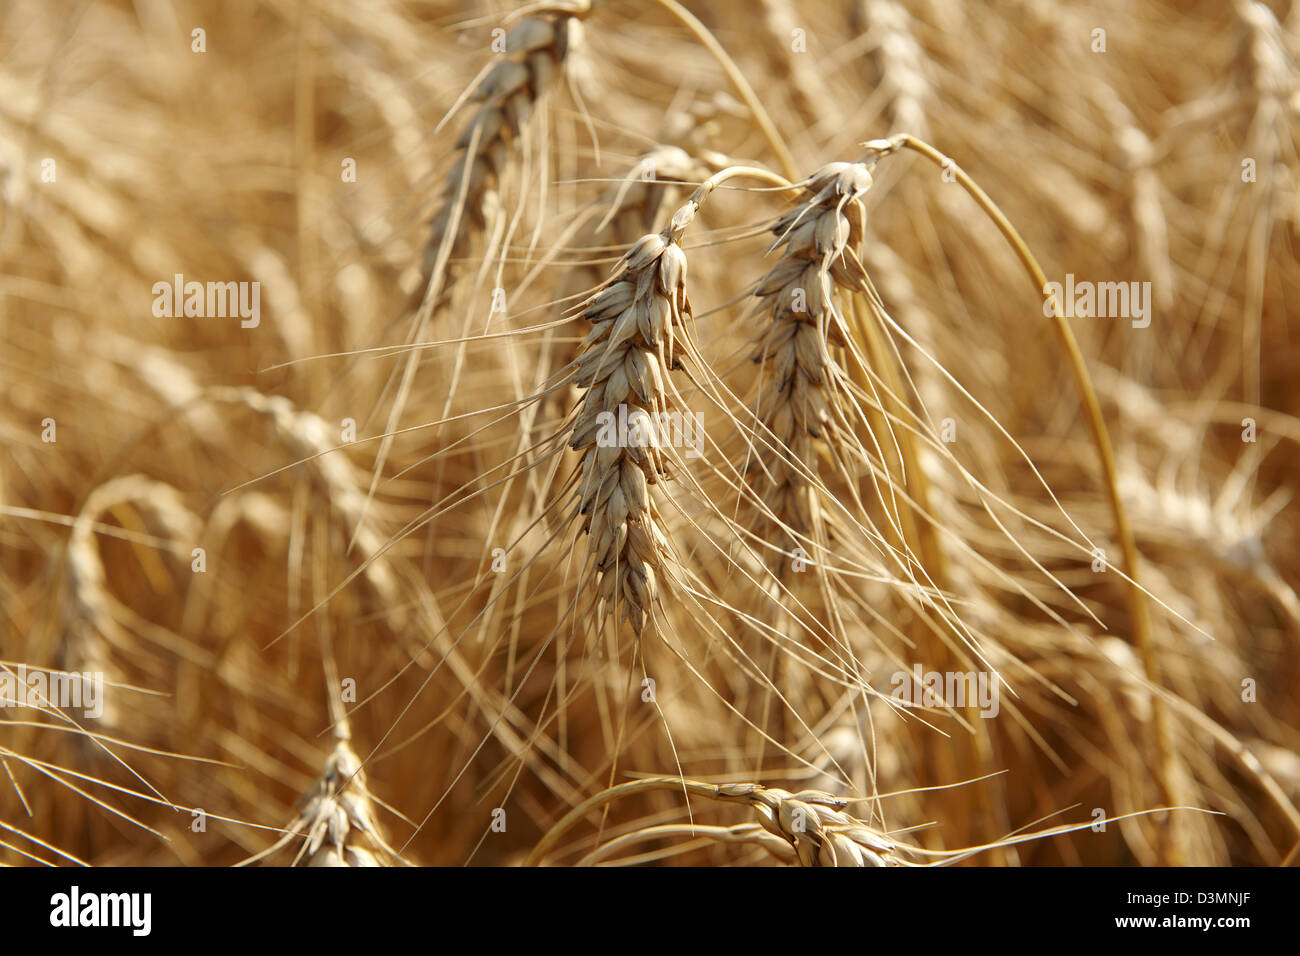 wheat field ready to be harvested - Stock Image